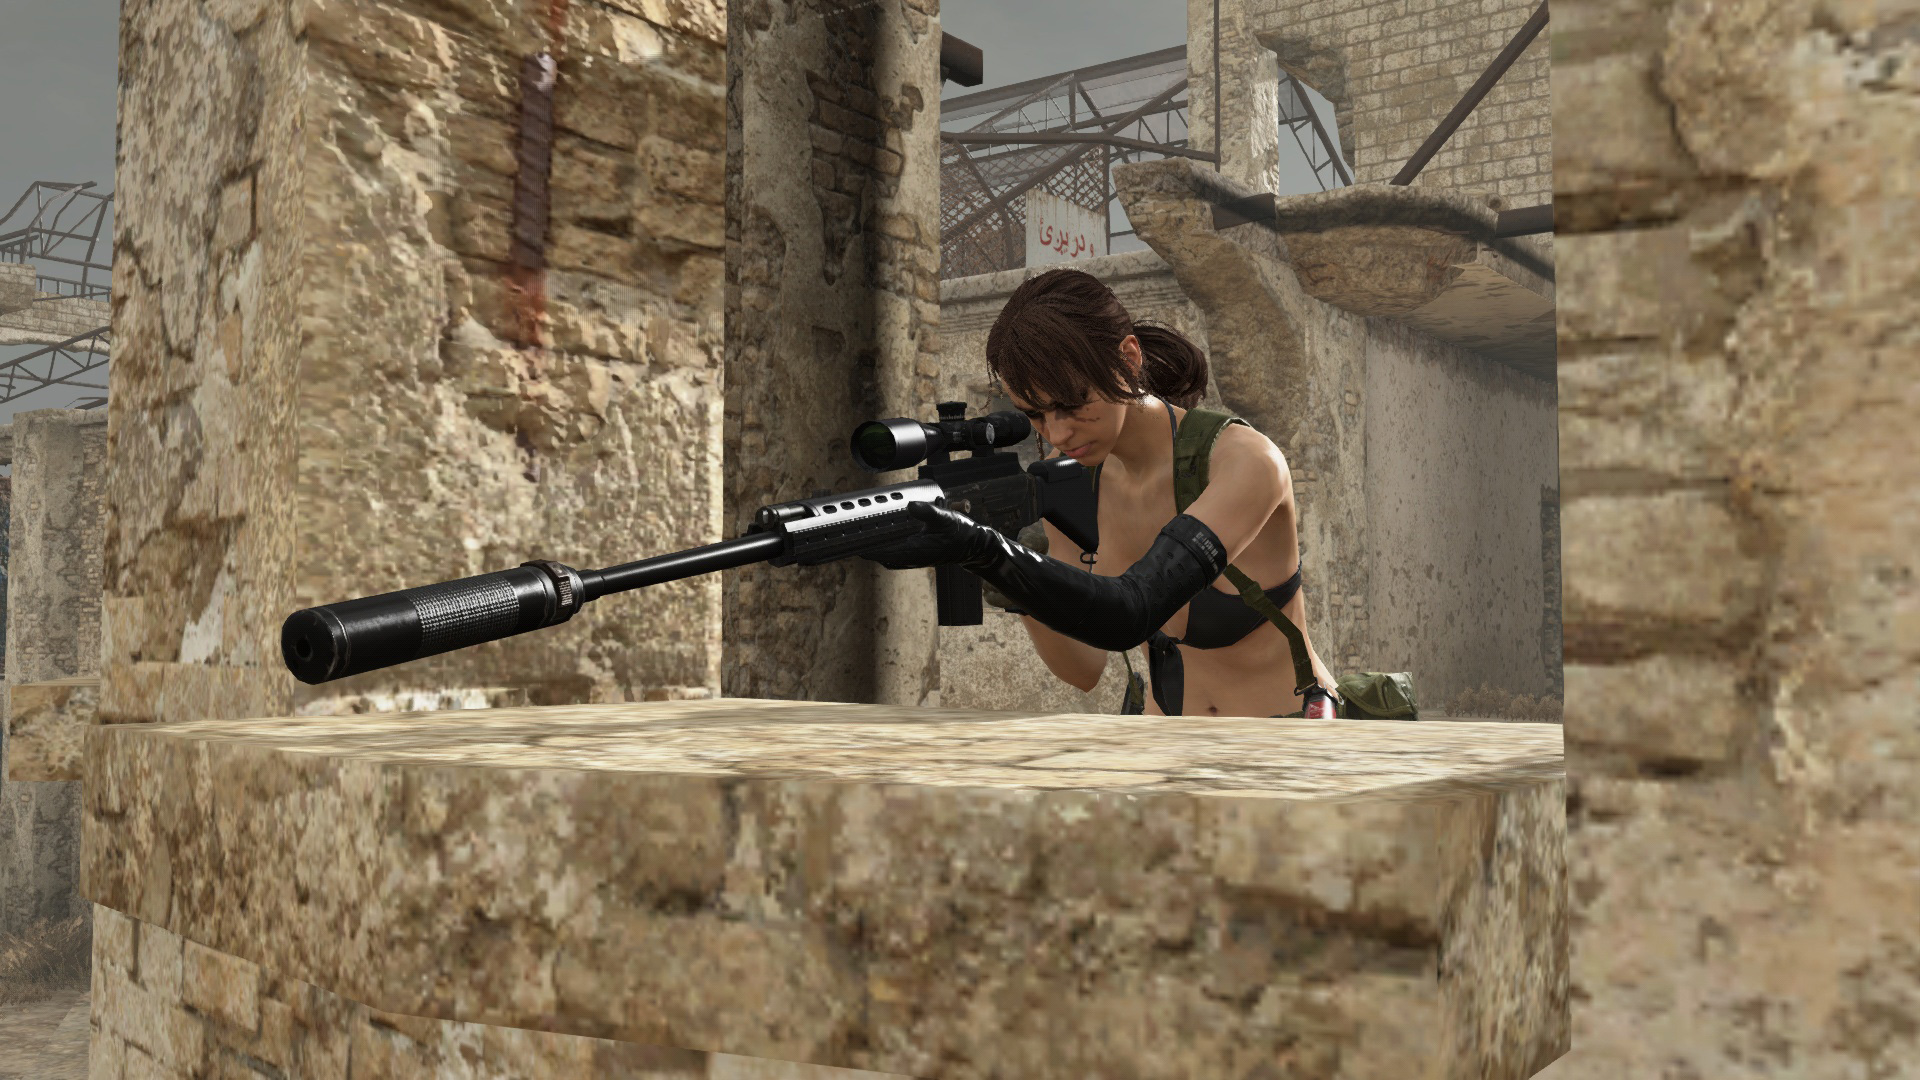 Metal Gear Online – Cloaked in Silence DLC - Quiet